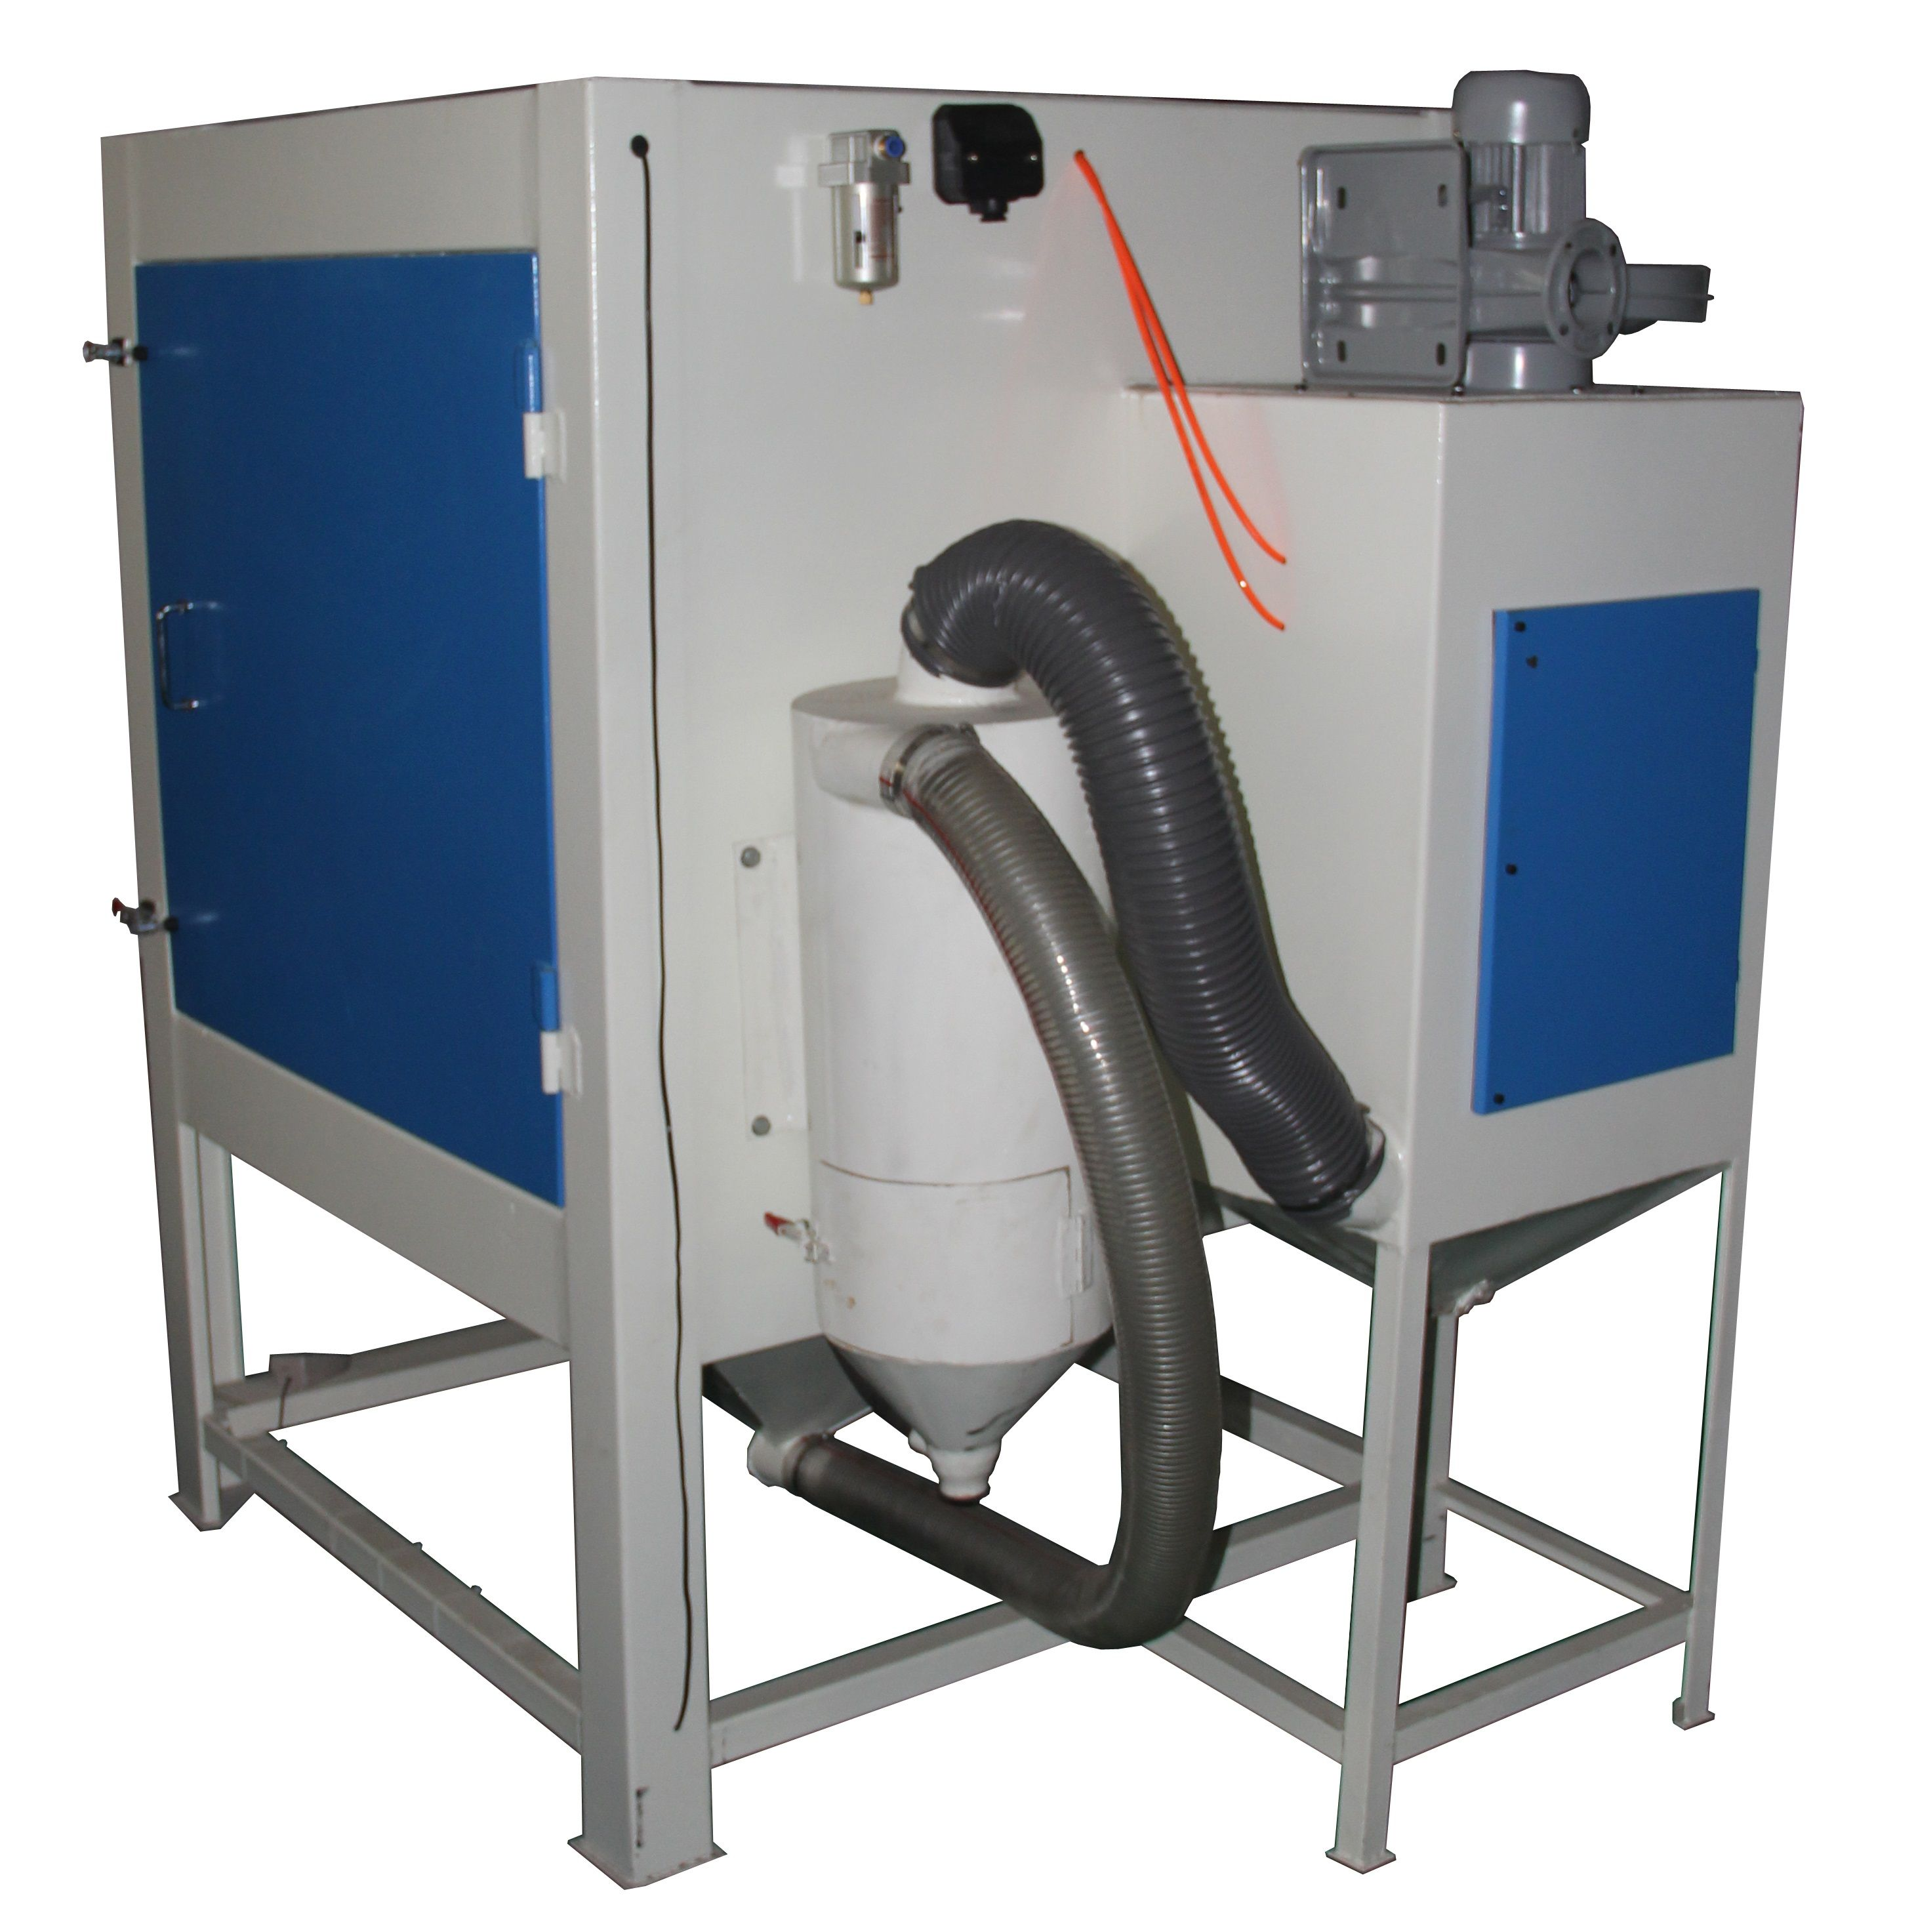 This sandblasting cabinet has a cyclone system which could effective